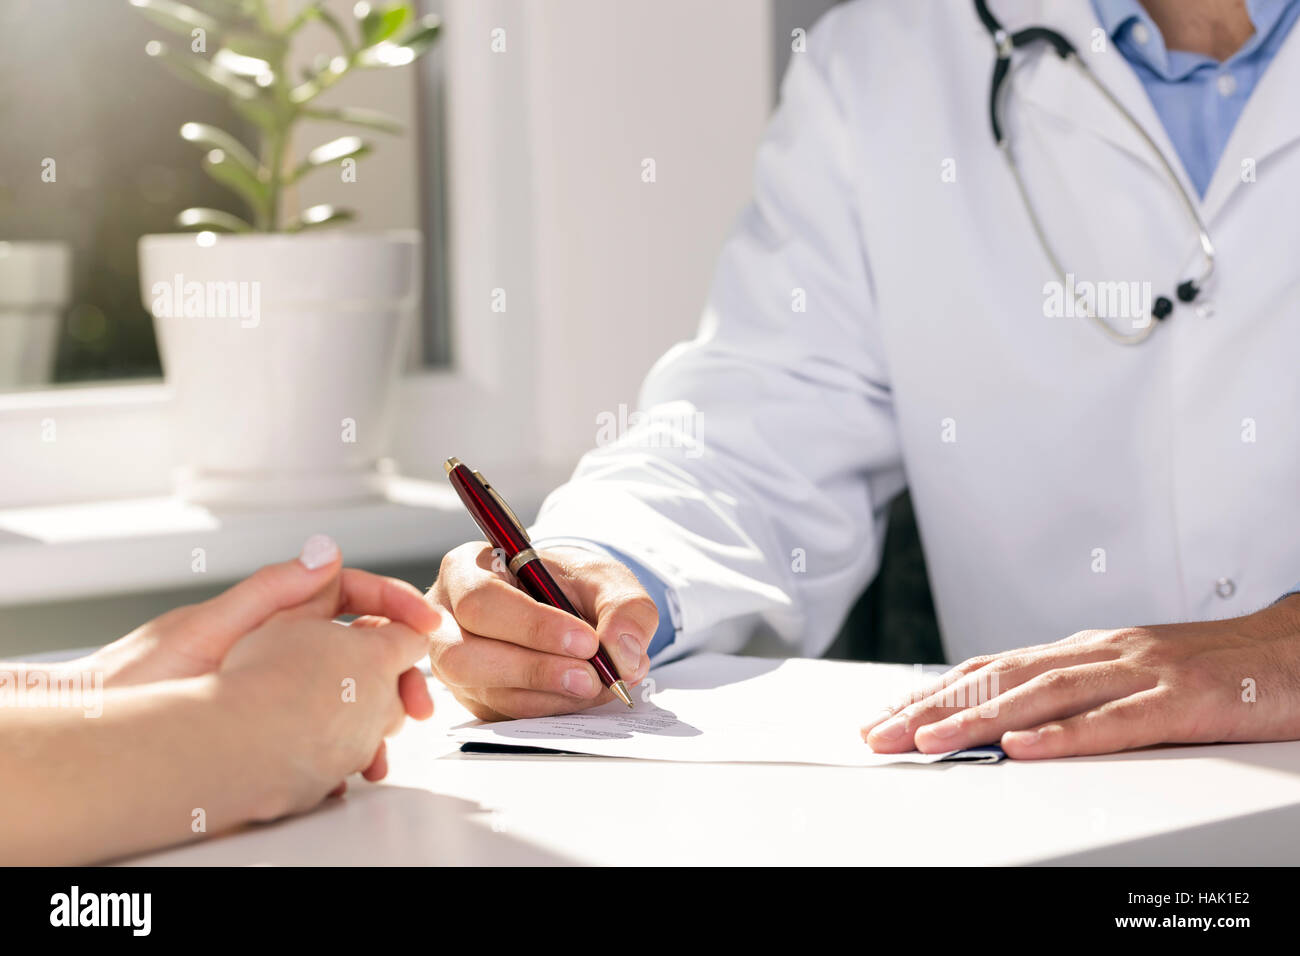 Image result for images of consultation with doctor